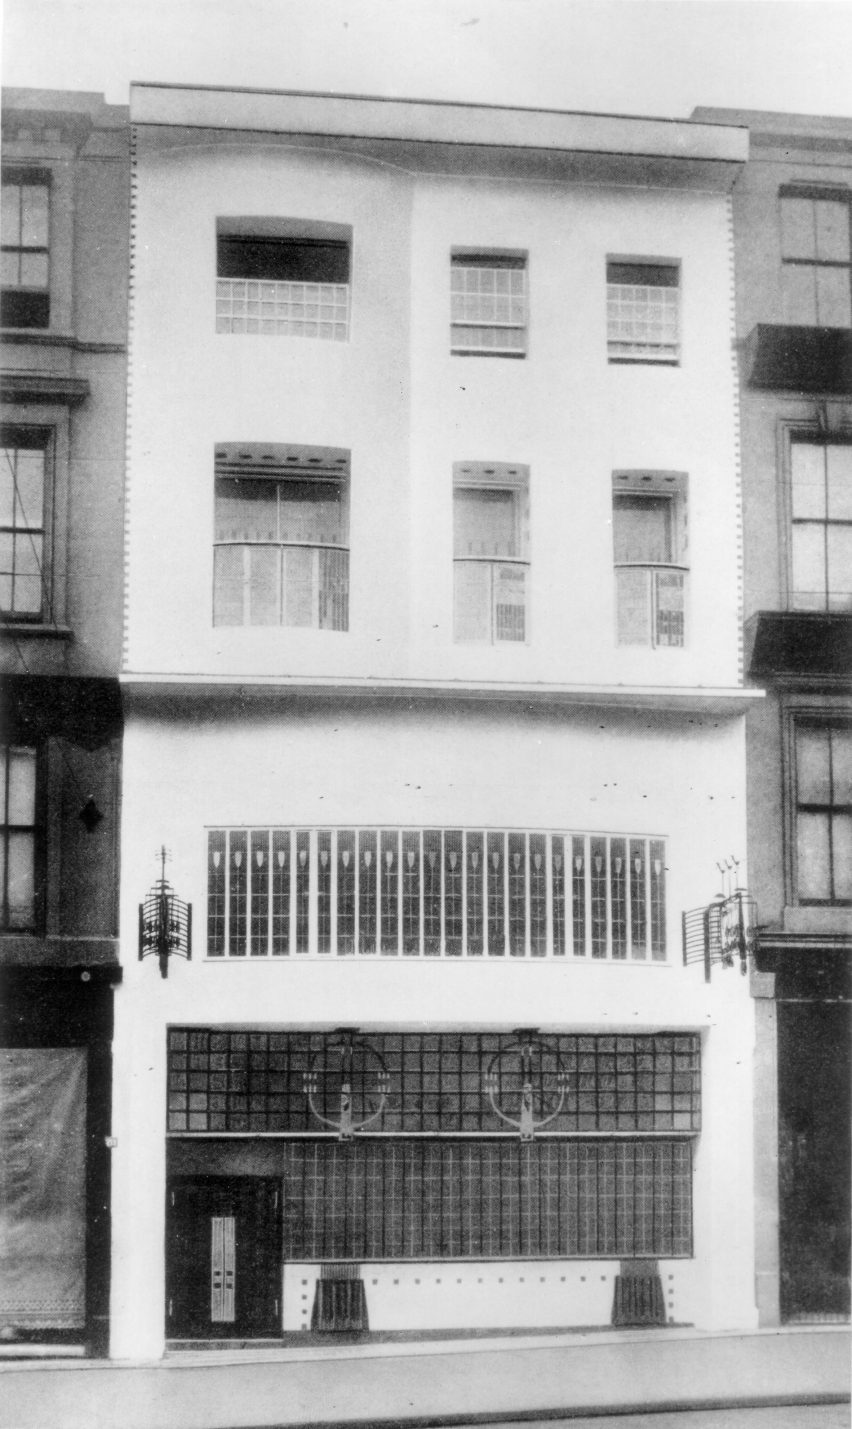 Willow Tea Rooms by Charles Rennie Mackintosh